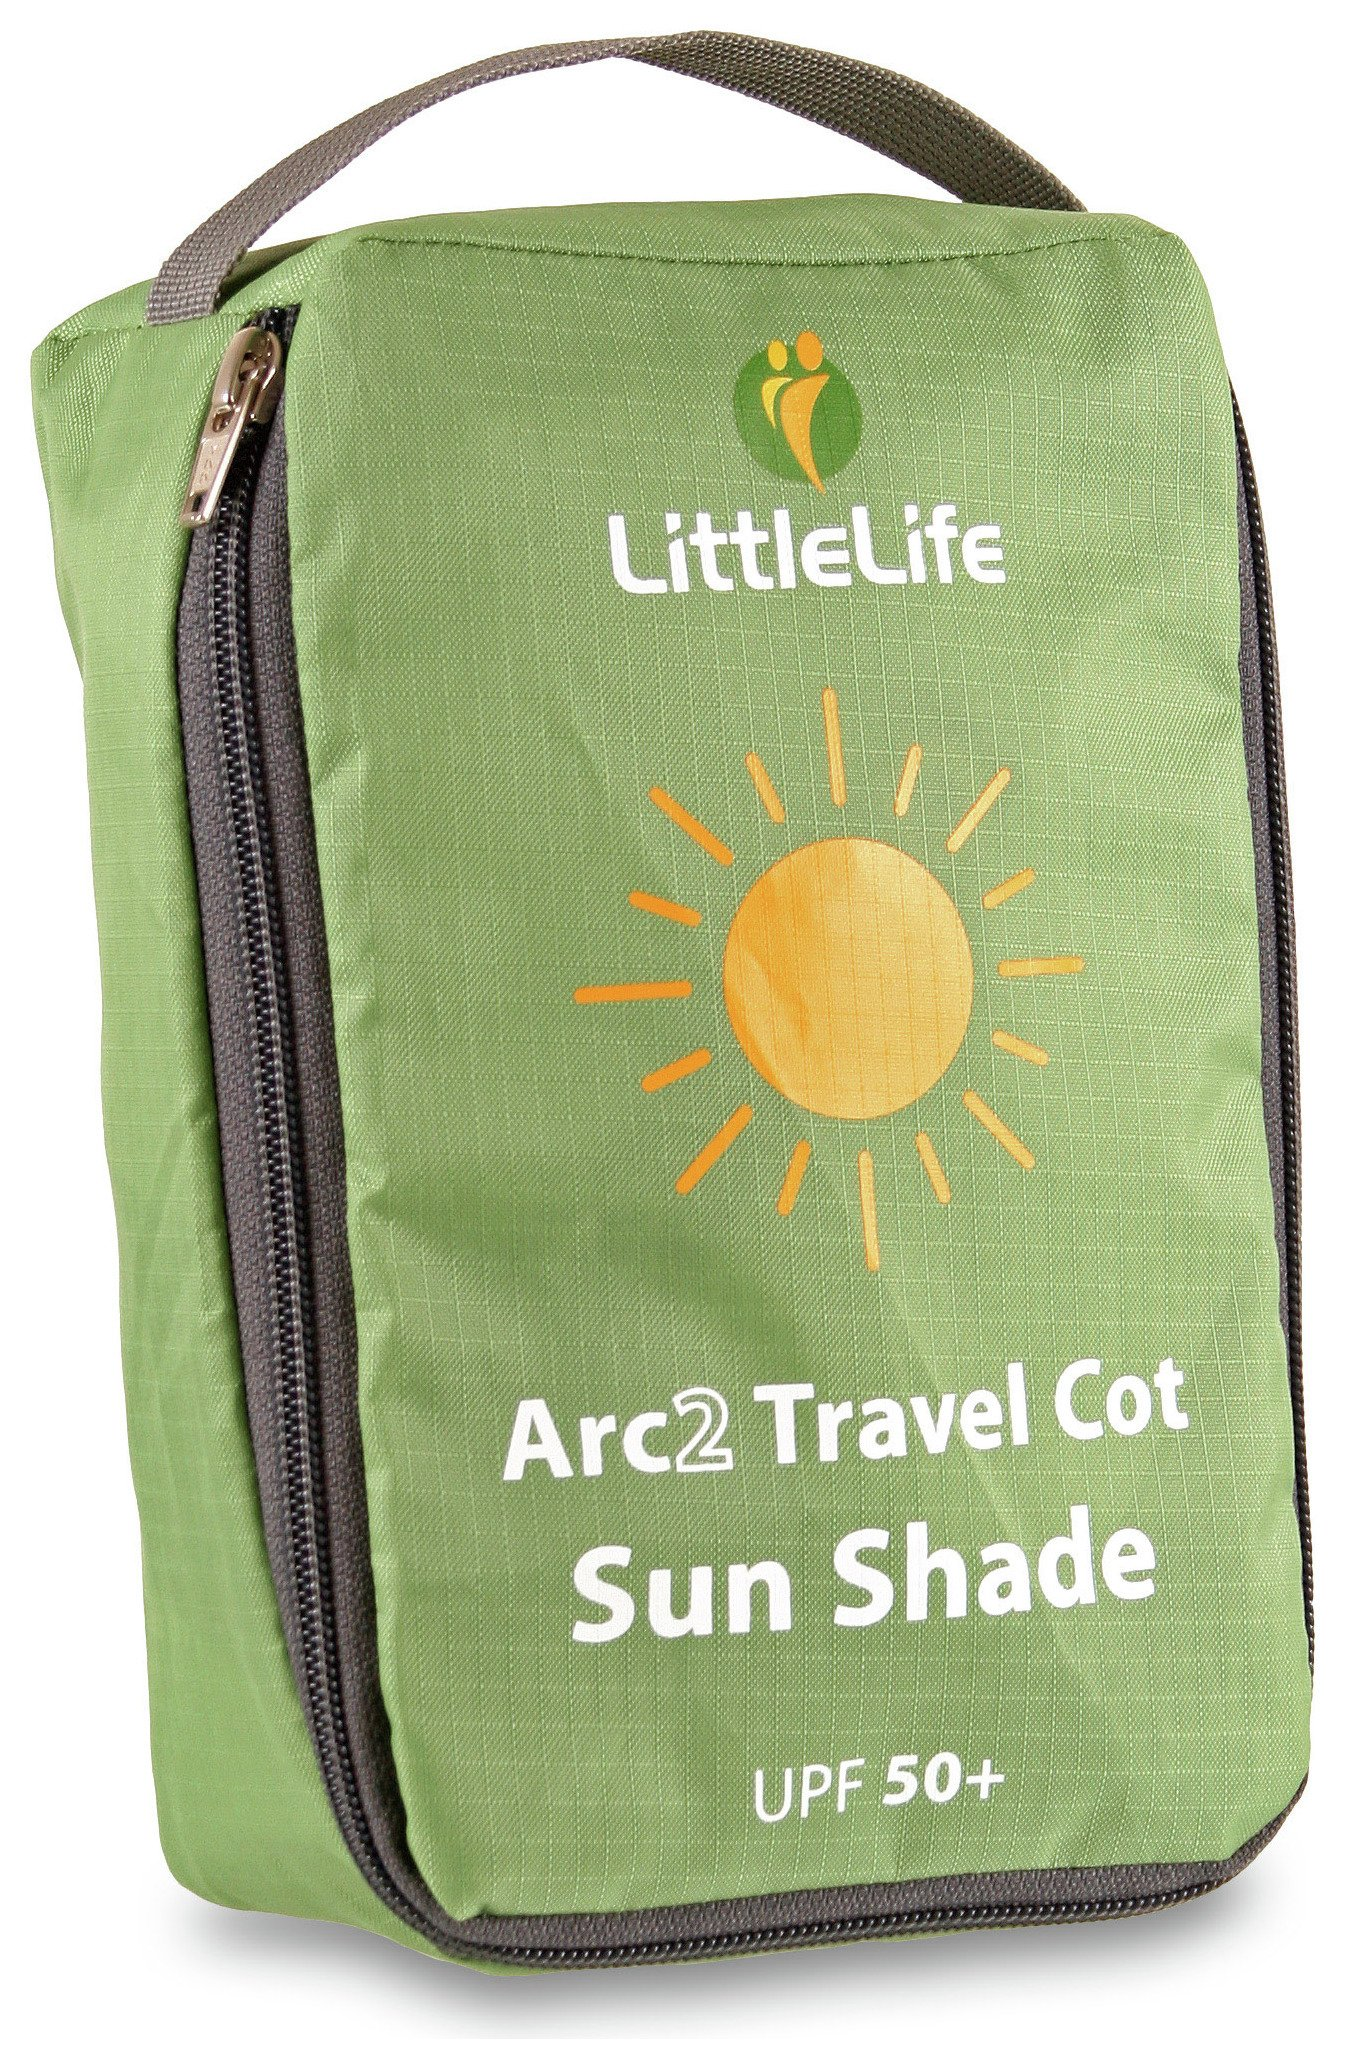 Littlelife Sunshade for Arc 2 Travel Cot from littlelife